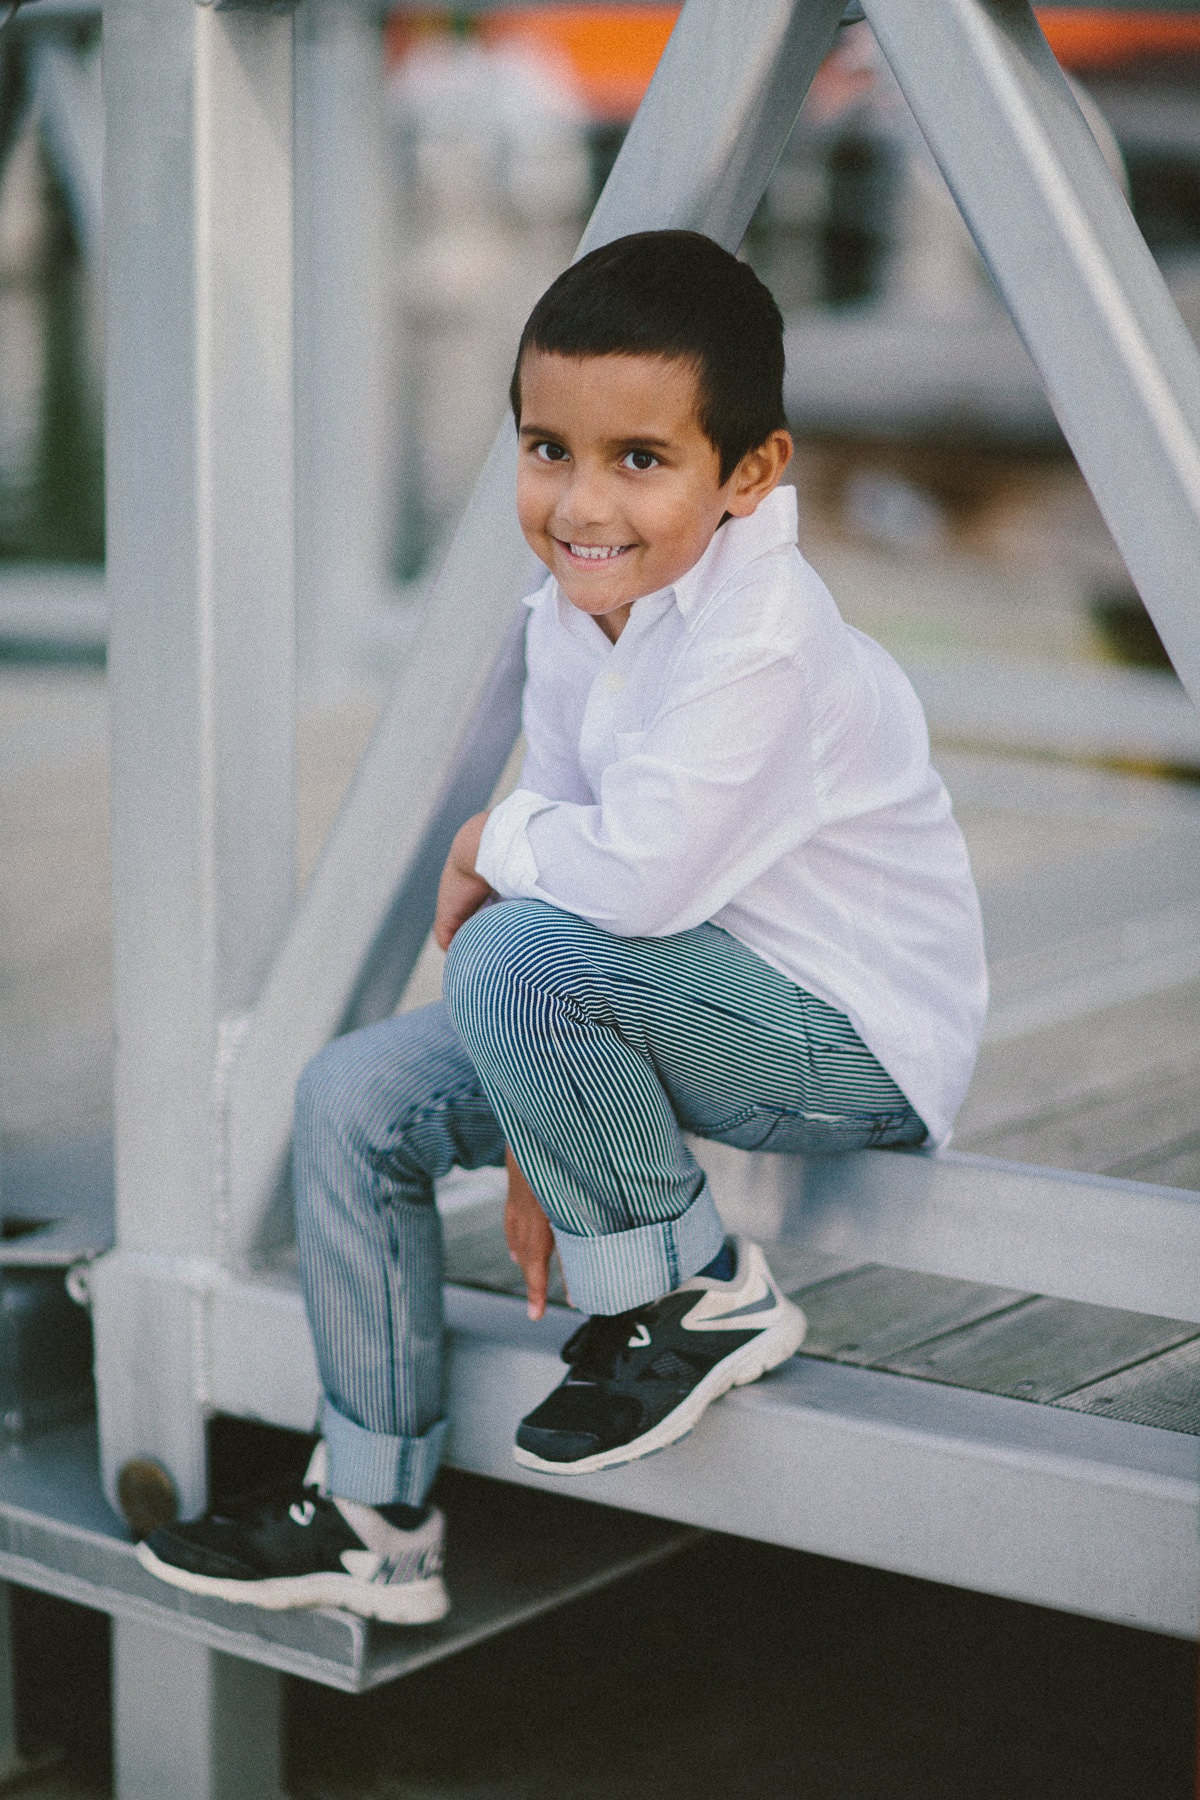 kids portraits in melbourne outdoor locations - city backdrop